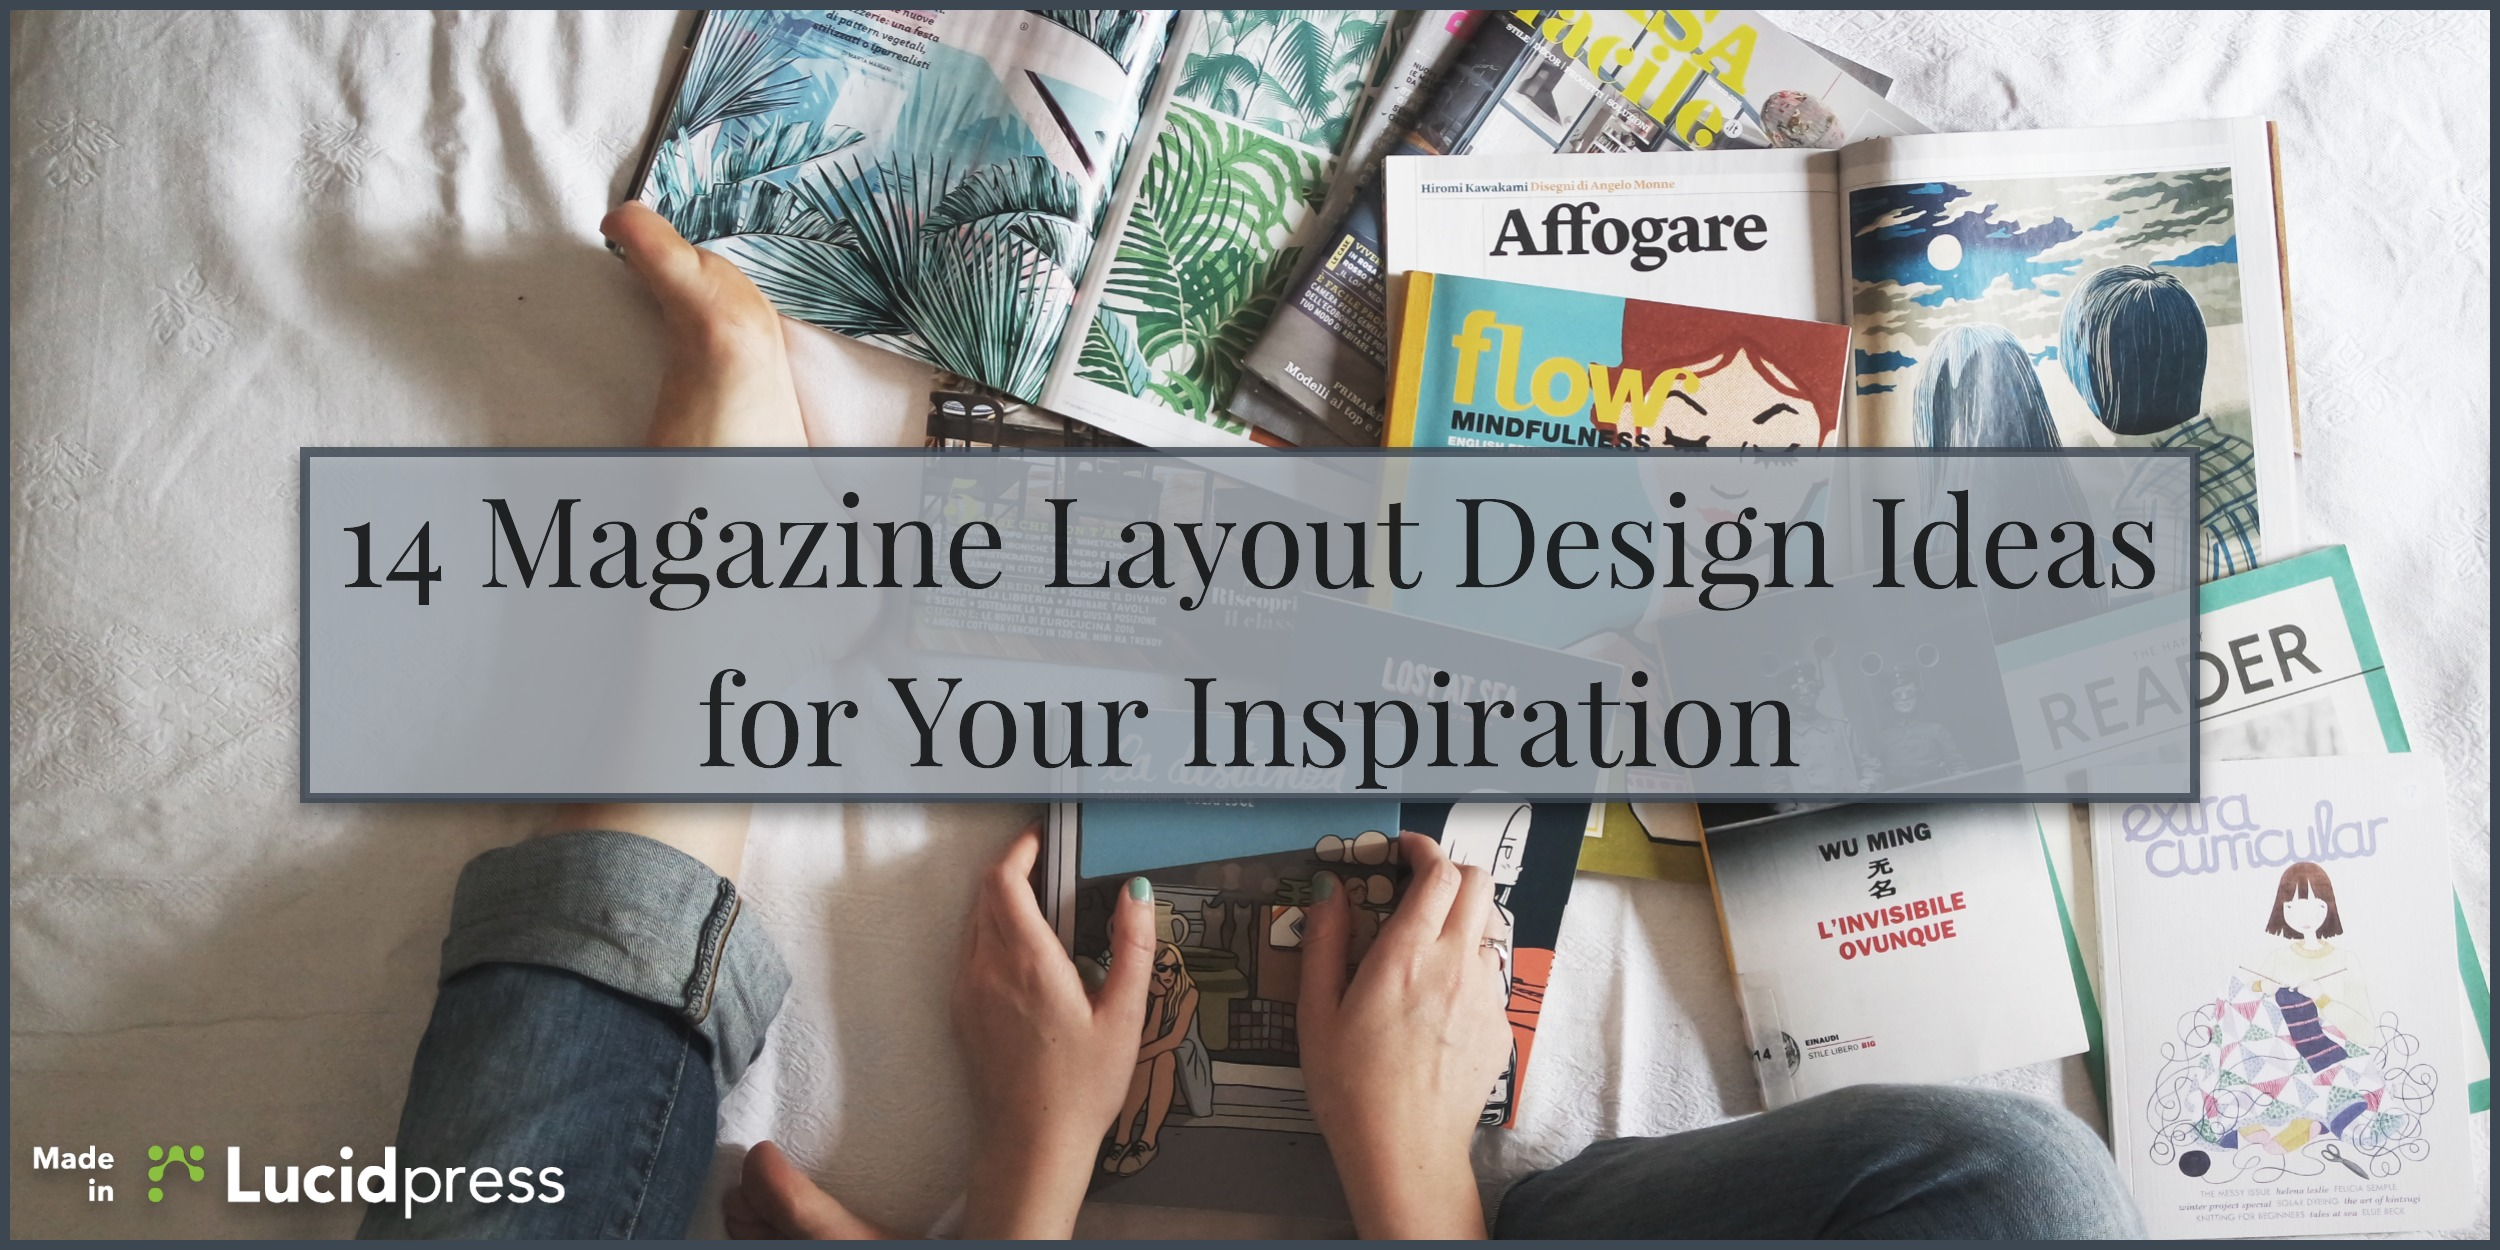 14 Magazine Layout Design Ideas for Your Inspiration